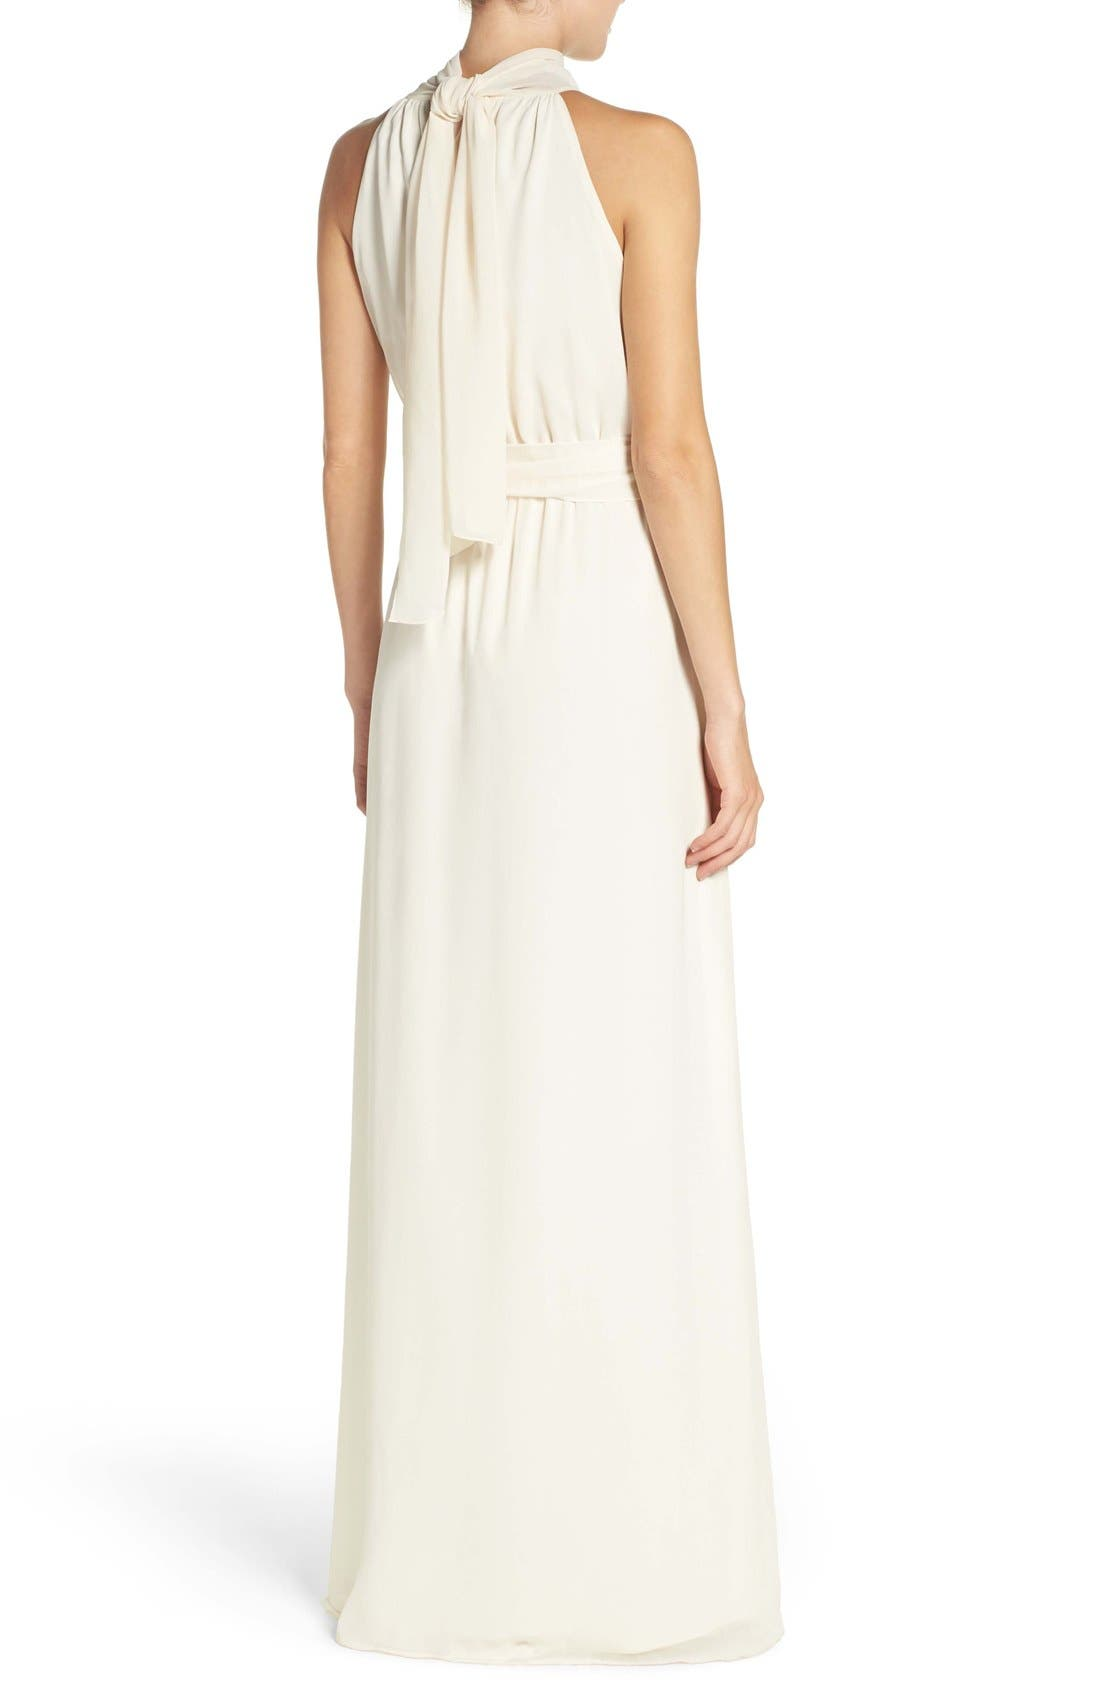 Alternate Image 3  - Ceremony by Joanna August 'Riggs' Halter V-Neck Chiffon Gown